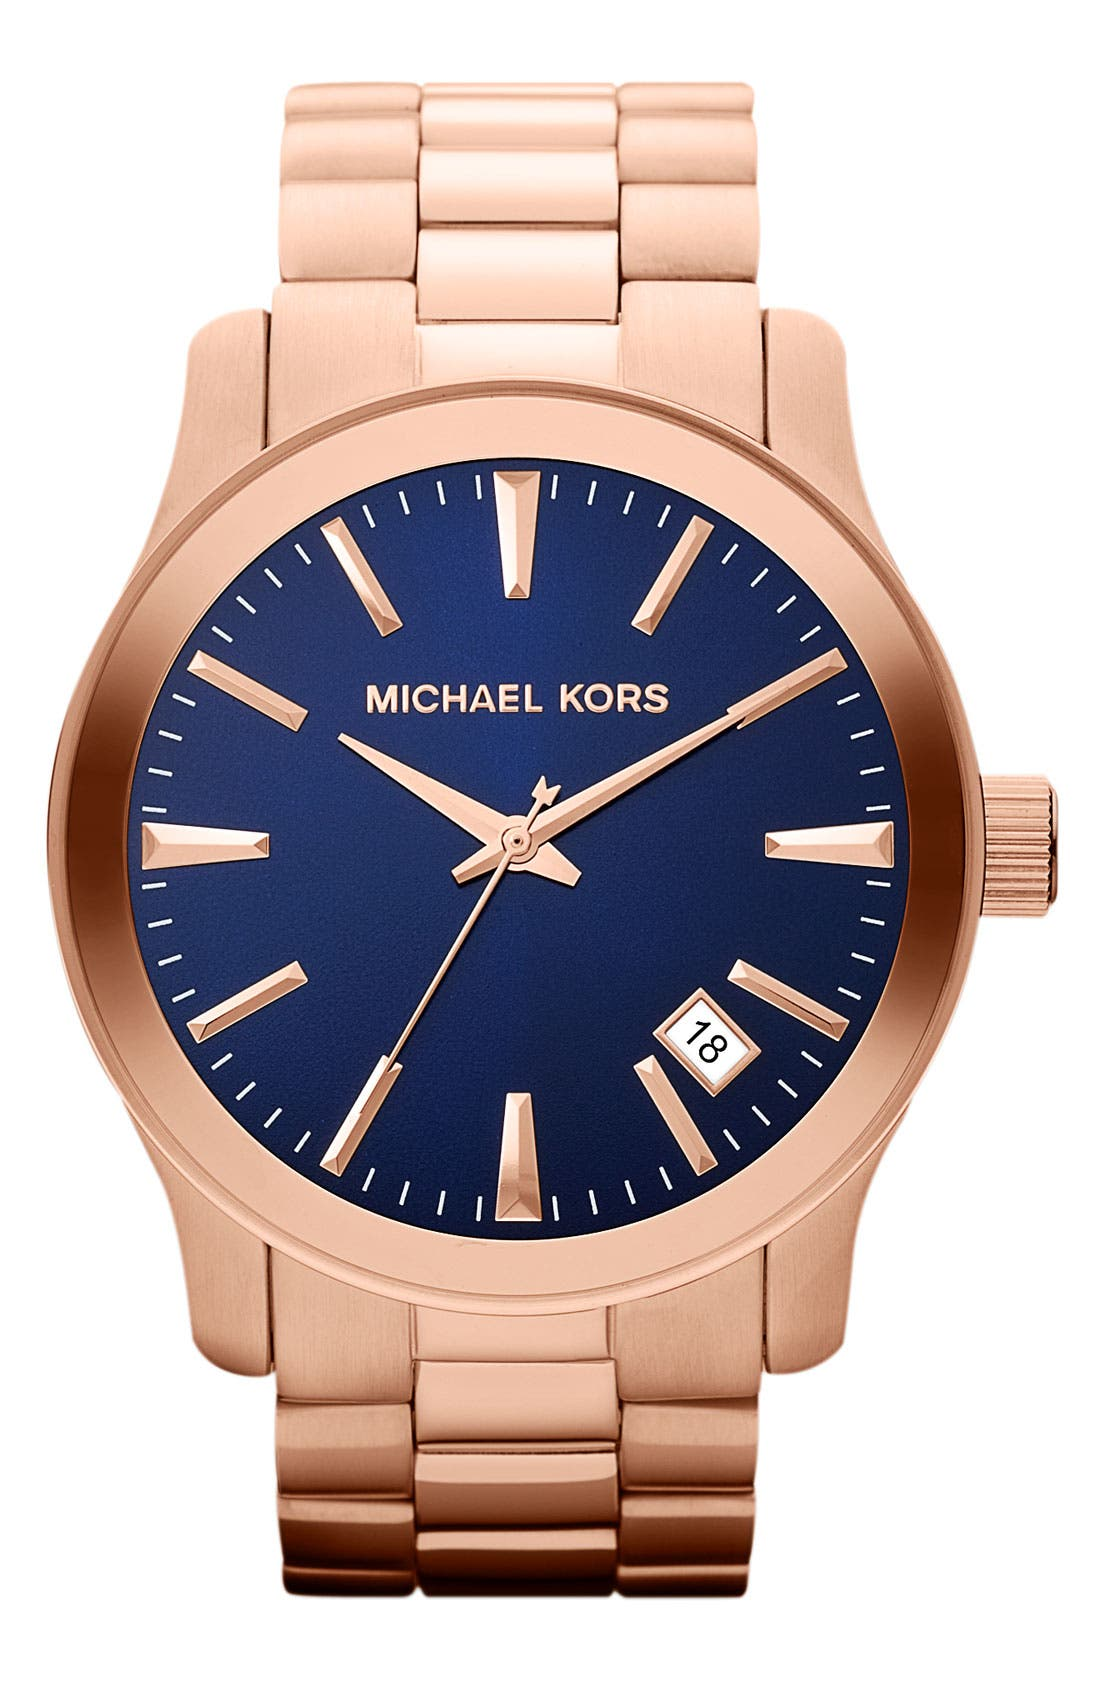 Main Image - Michael Kors 'Large Runway' Blue Dial Bracelet Watch, 45mm